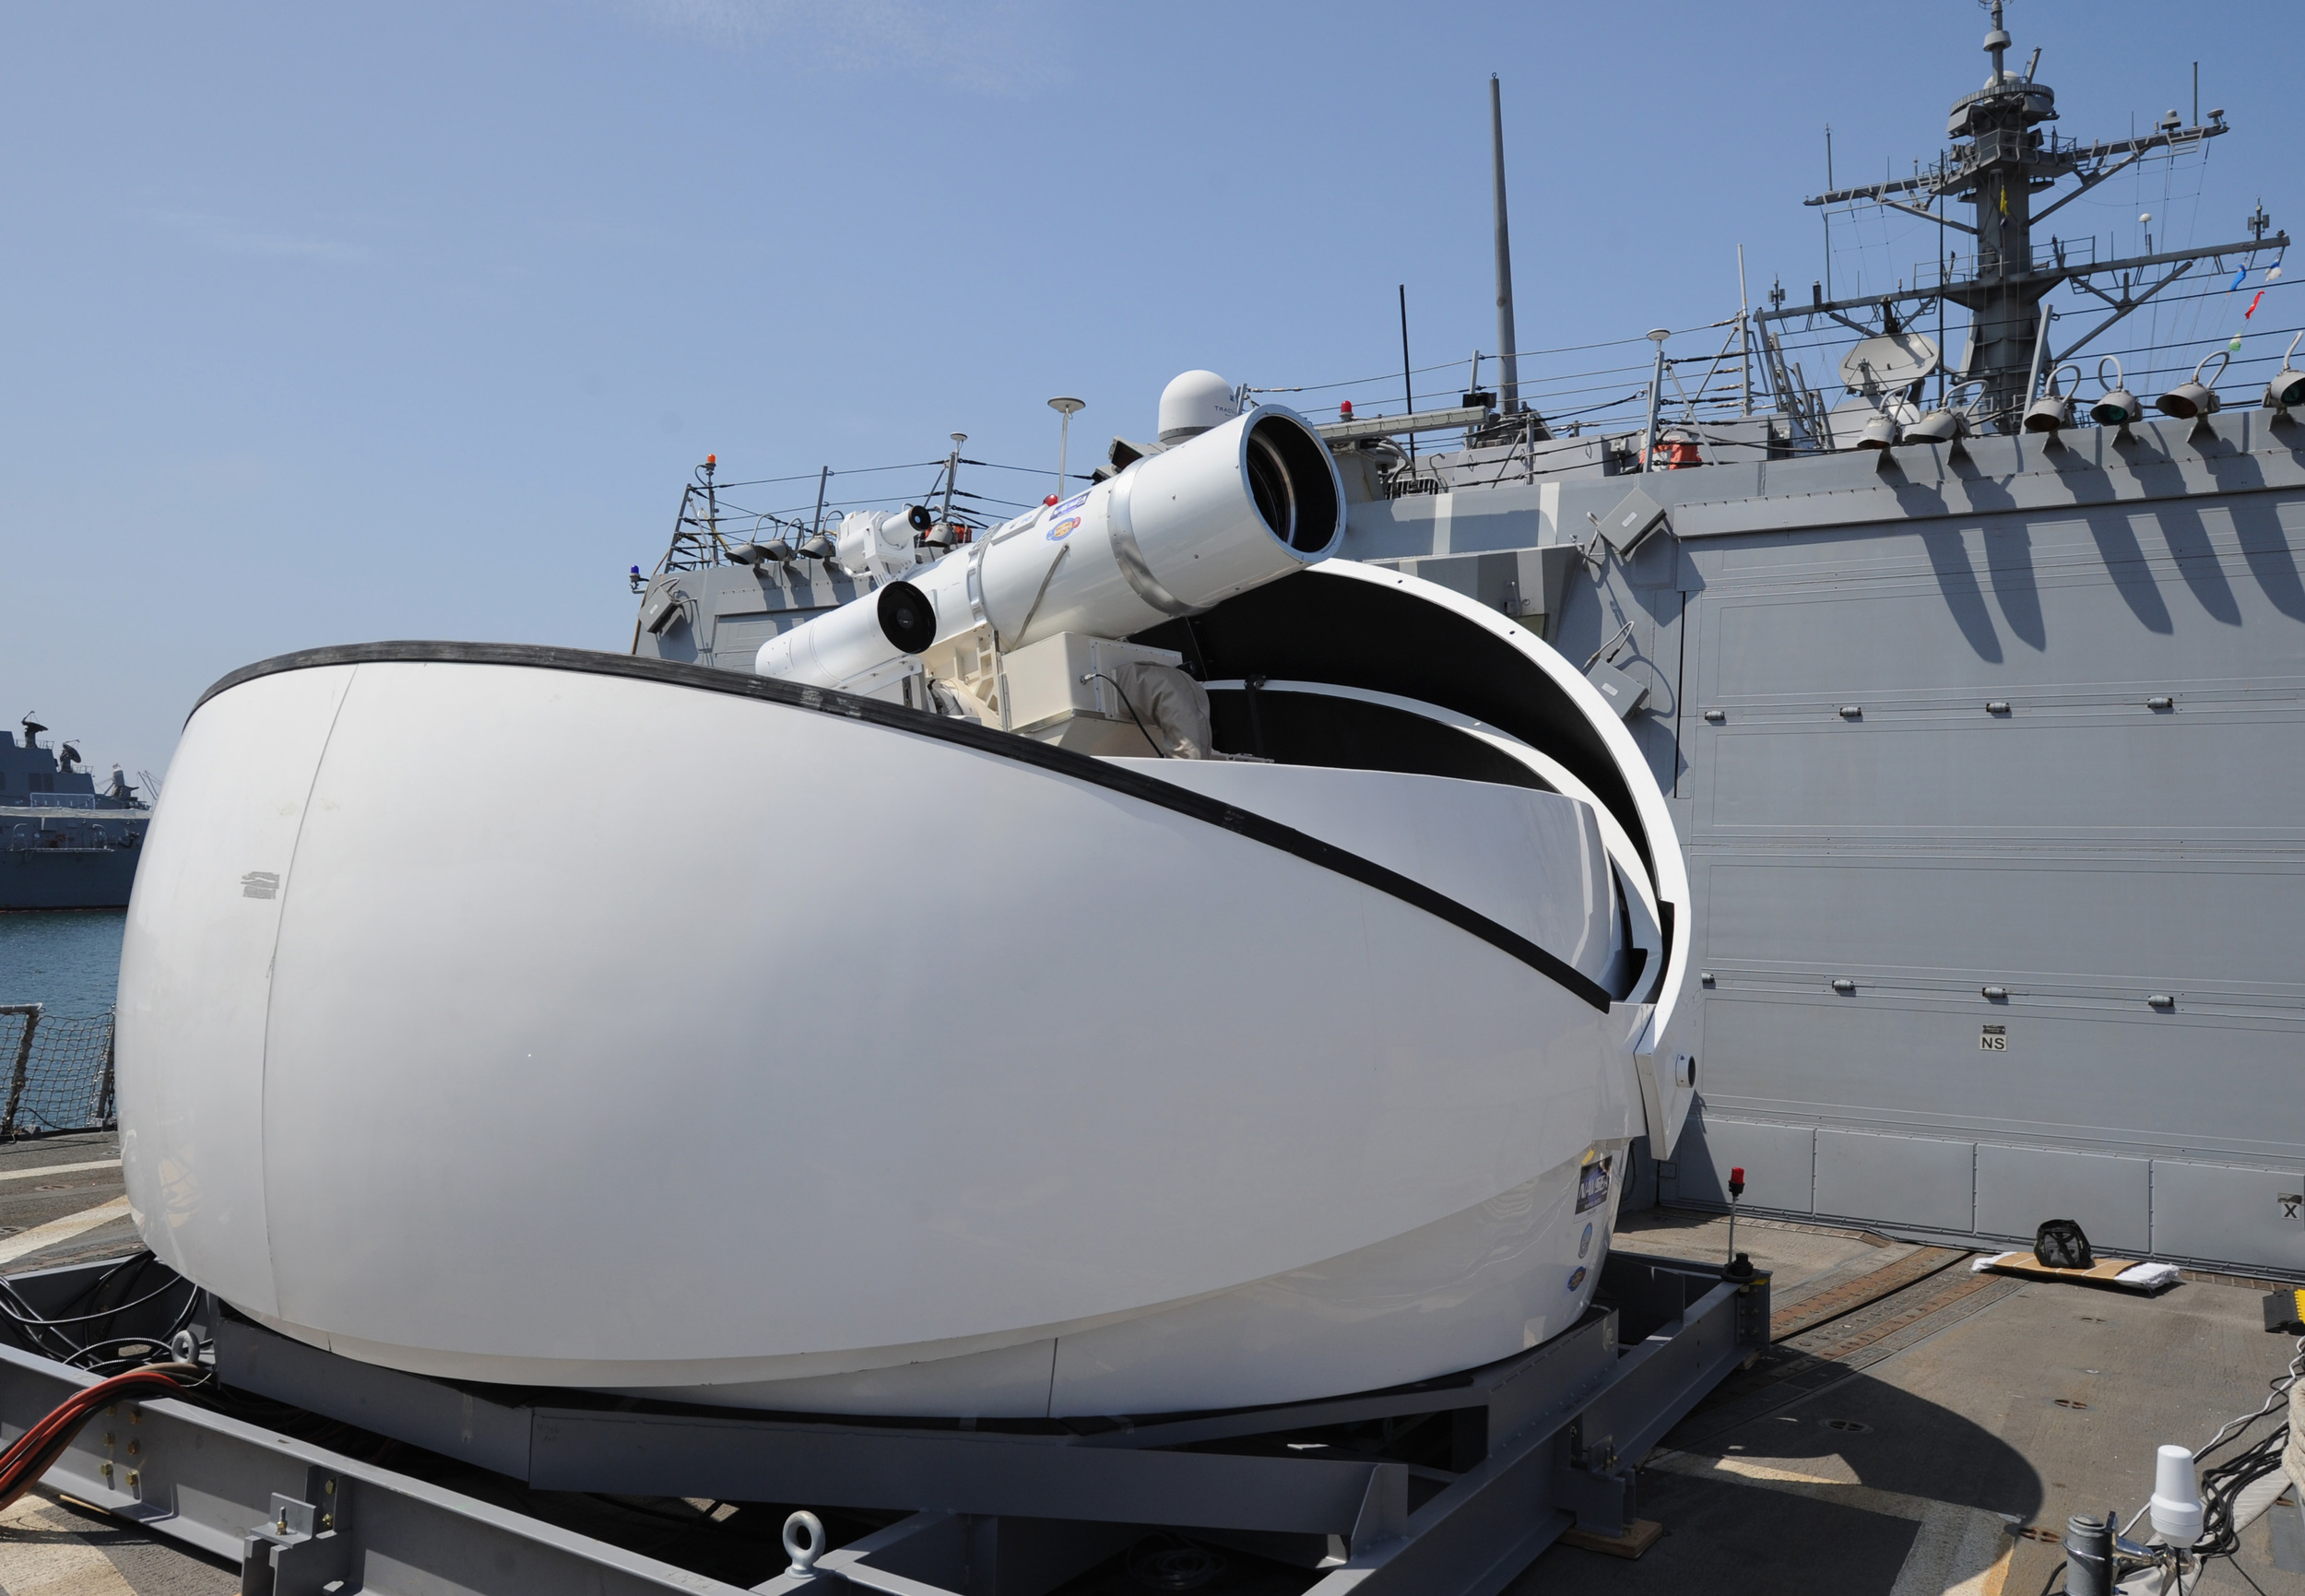 The Laser Weapon System (LaWS) temporarily installed aboard the destroyer USS Dewey, was developed by the Naval Sea Systems Command. It provides Navy ships a method to easily defeat small boat threats and aerial targets without using bullets. (U.S. Navy)